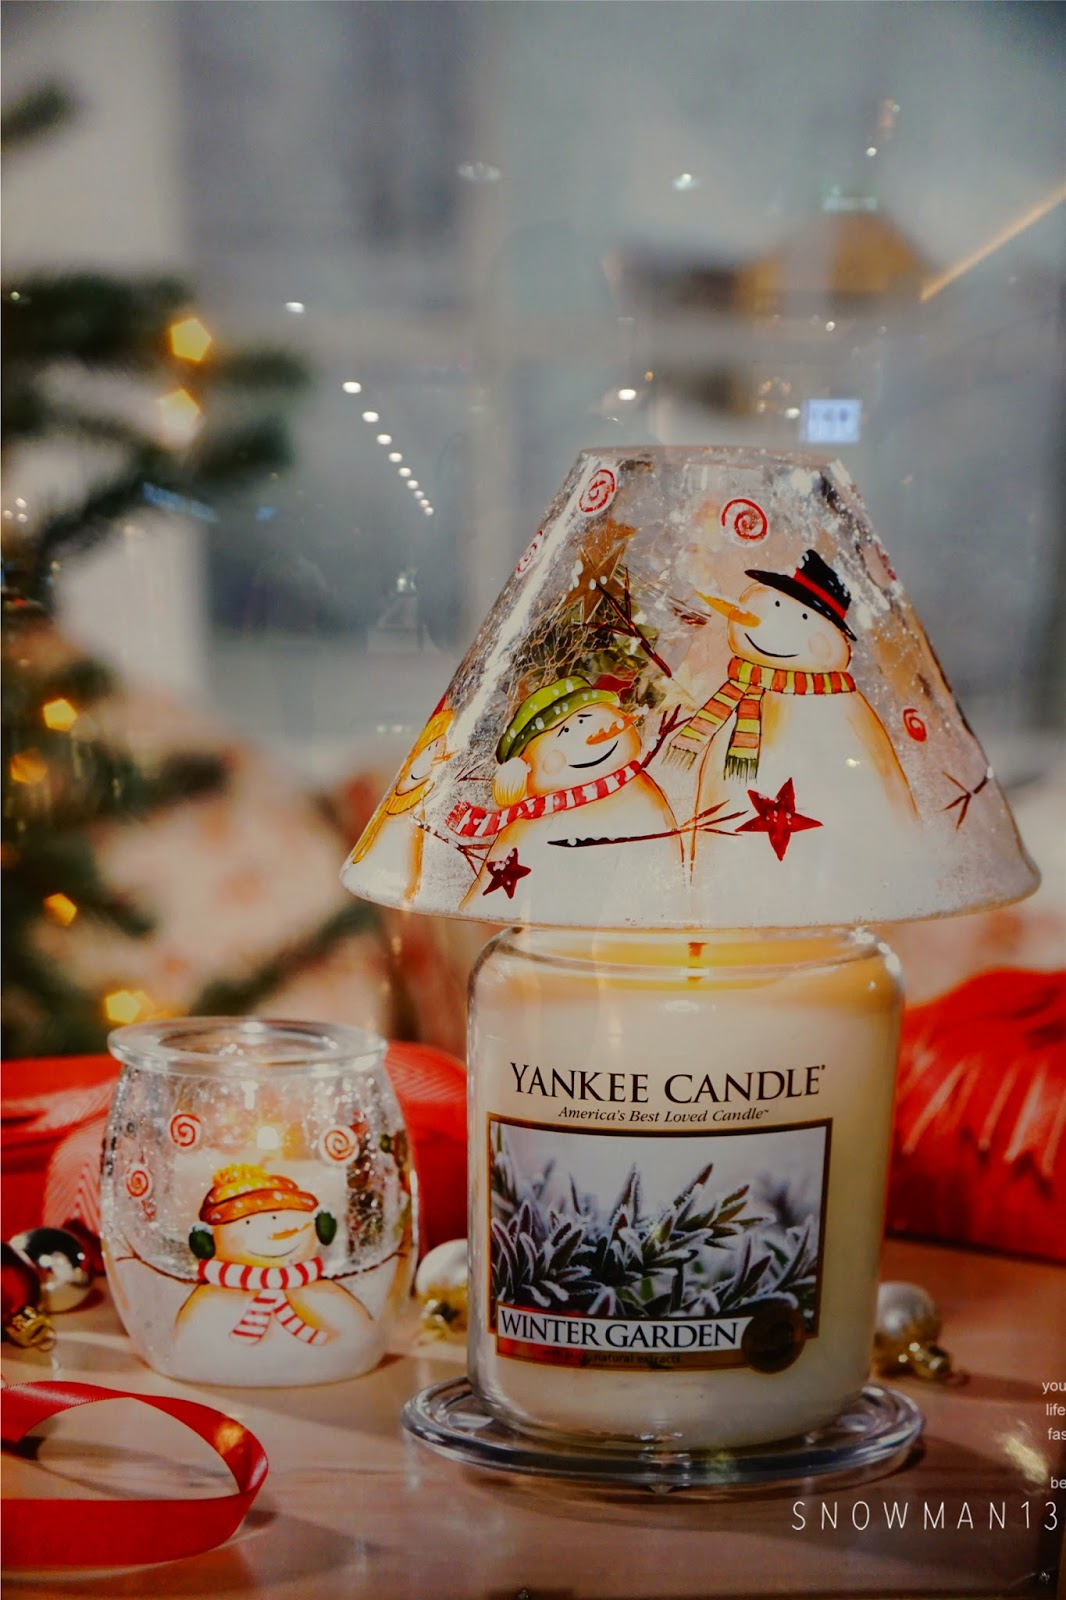 sharon snowman1314 candle fragrance for your home yankee